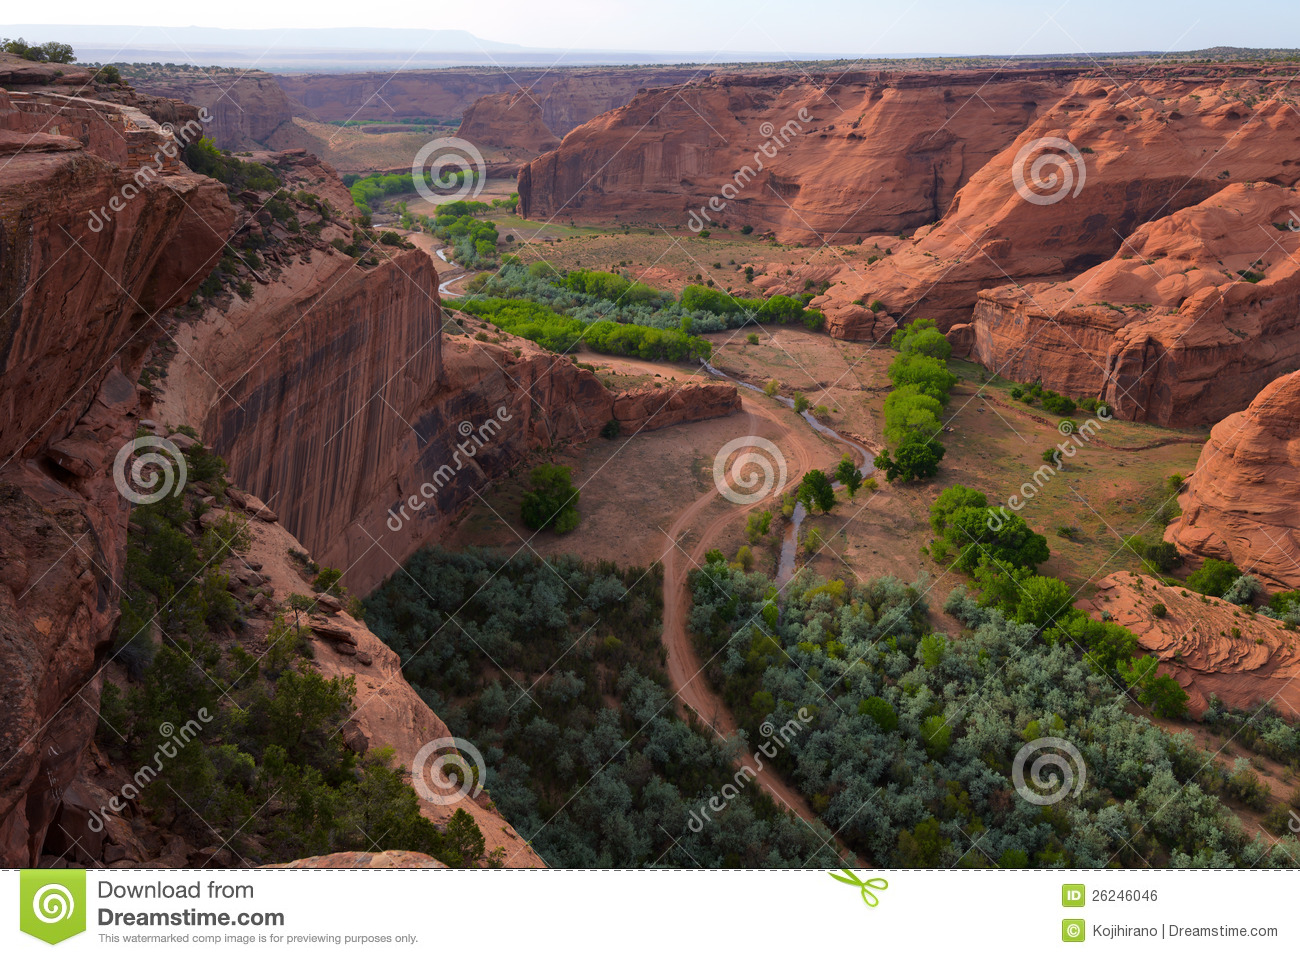 Canyon De Chelly National Monument clipart #4, Download drawings